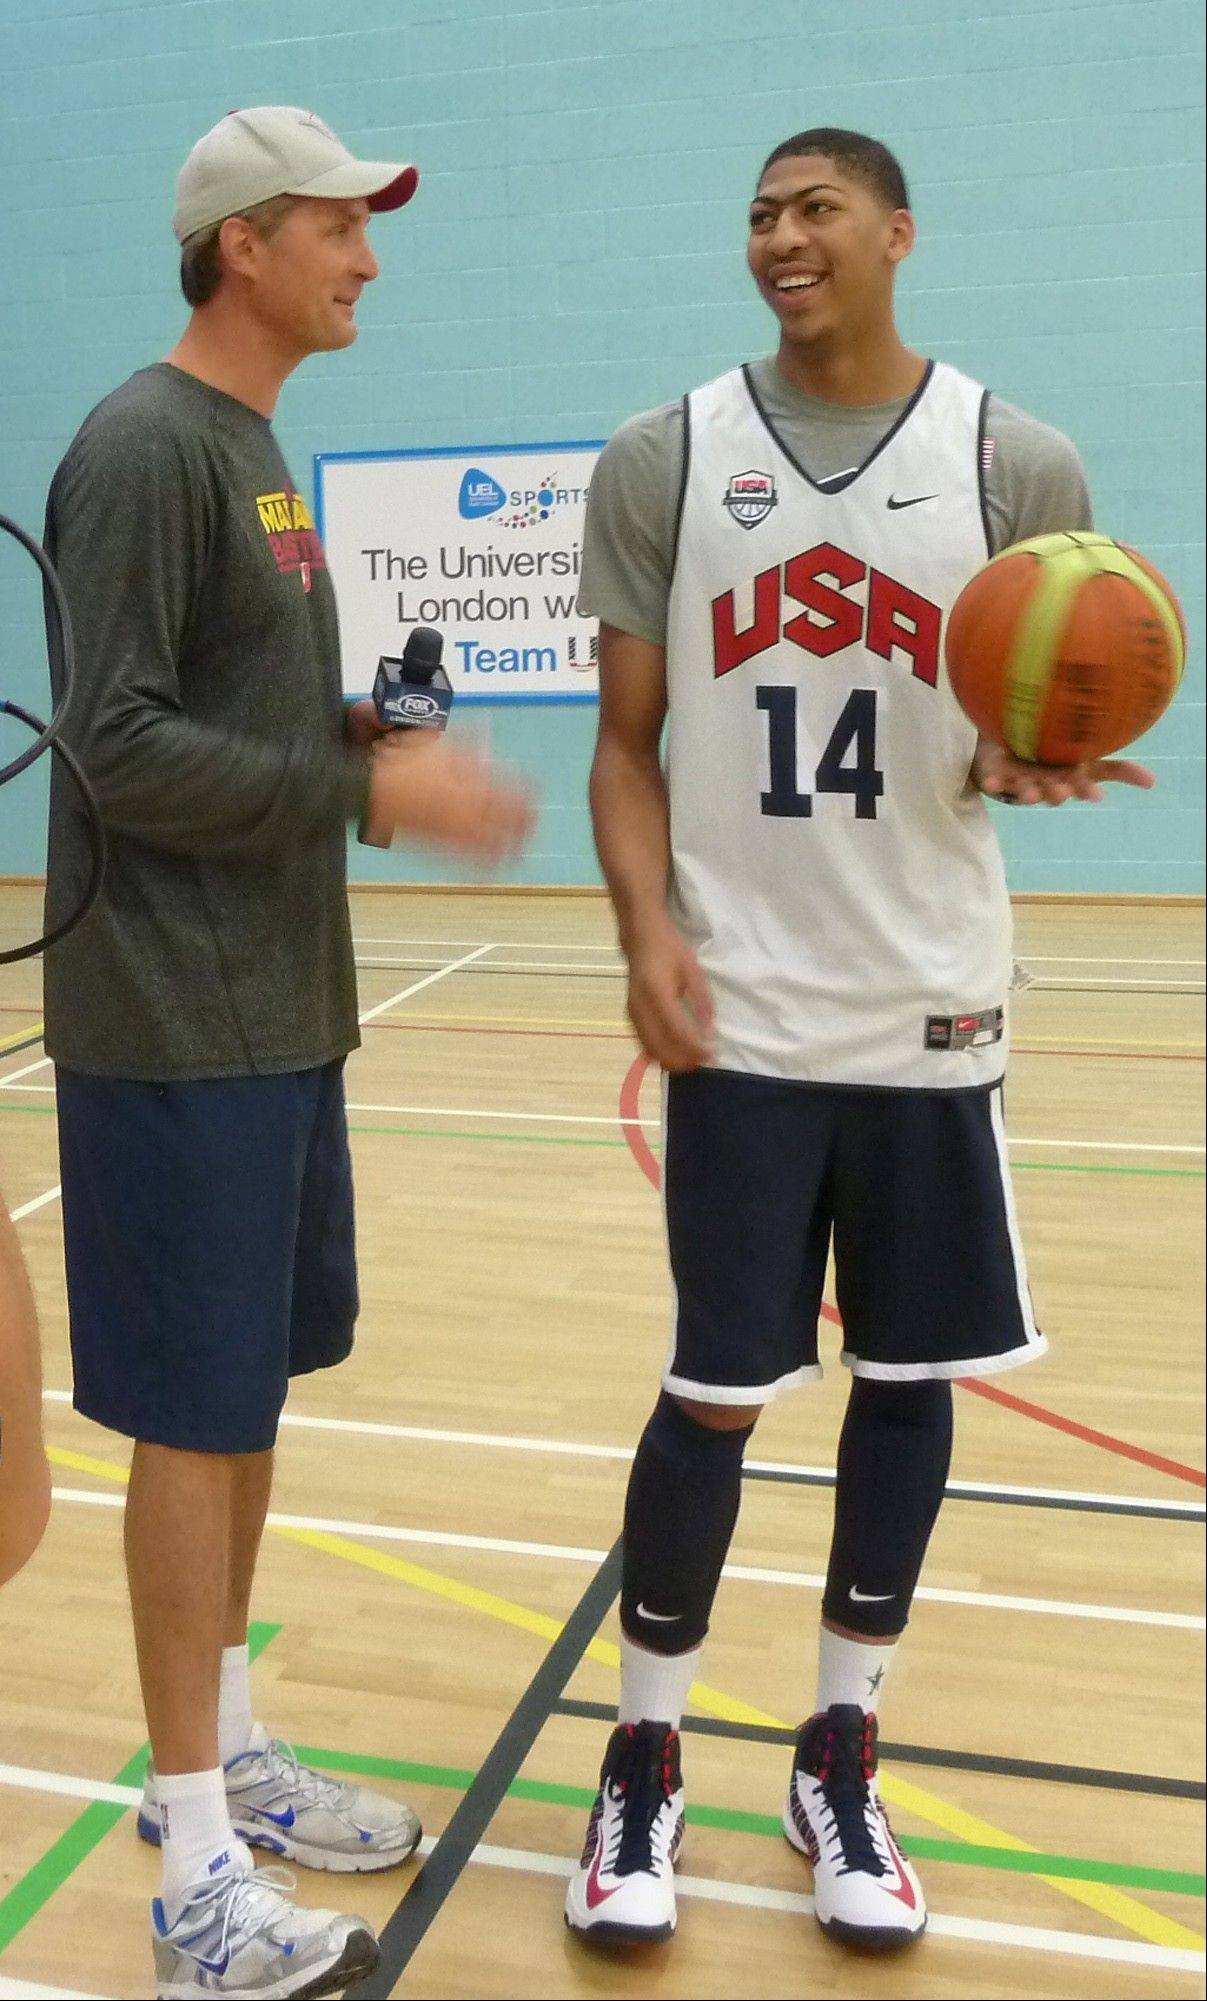 Anthony Davis: From college star to US Olympic sub